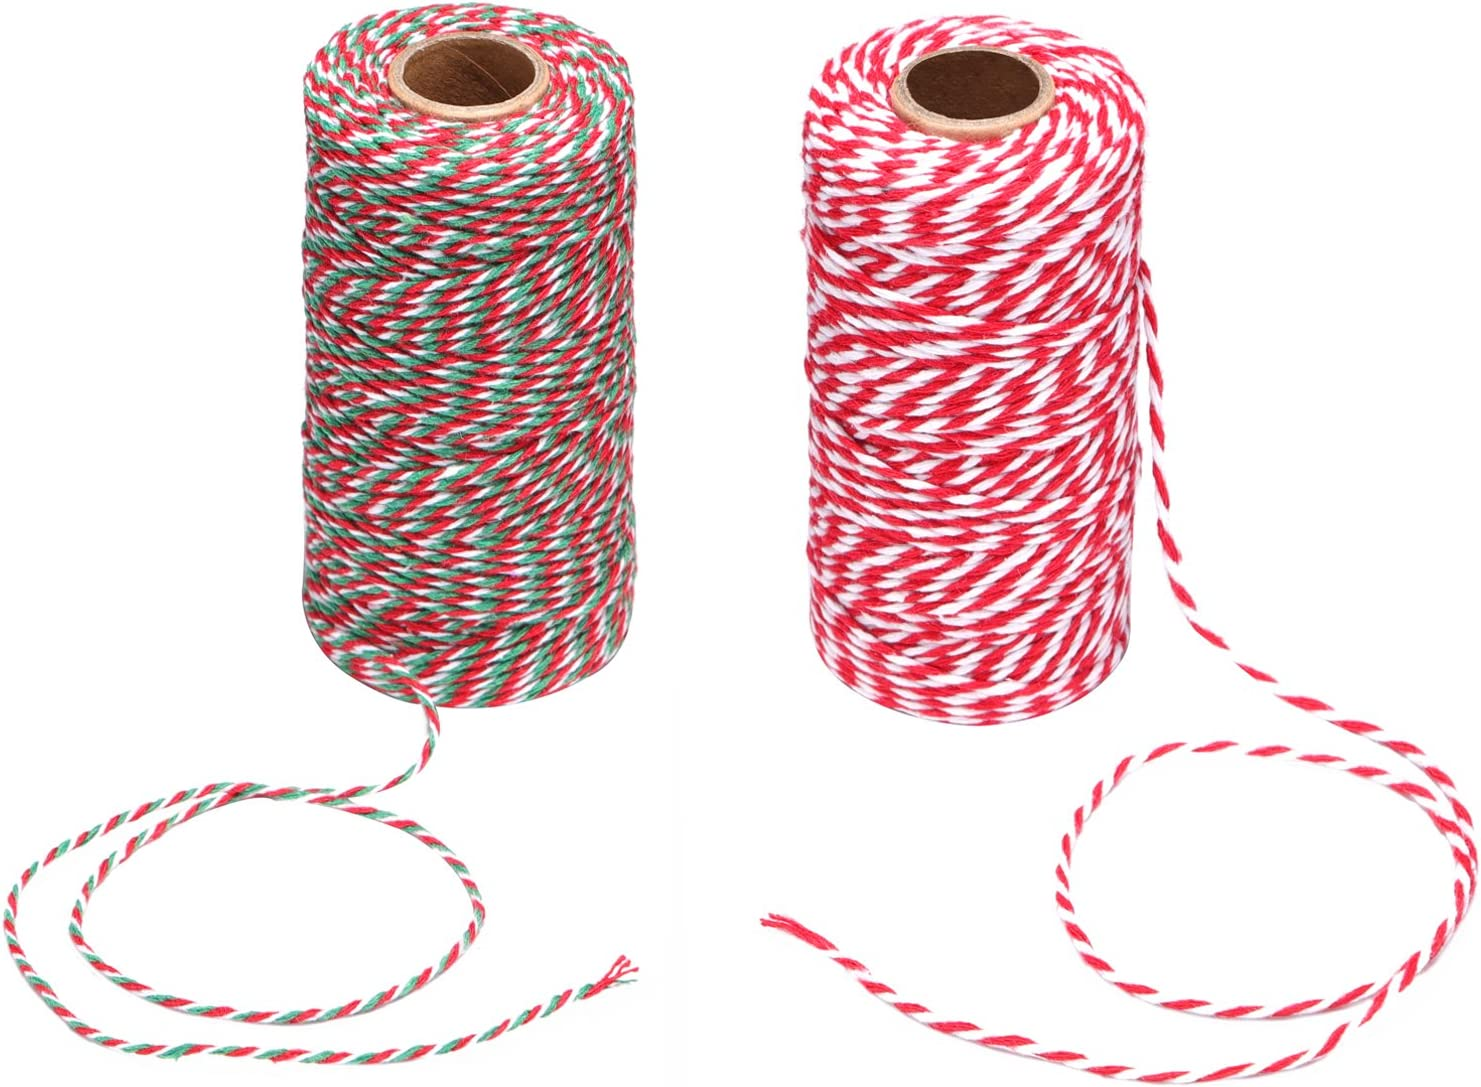 Maosifang Bakers Candy Rope Ribbon 1 year warranty Twine mm Cotton 55% OFF S 2 Cord